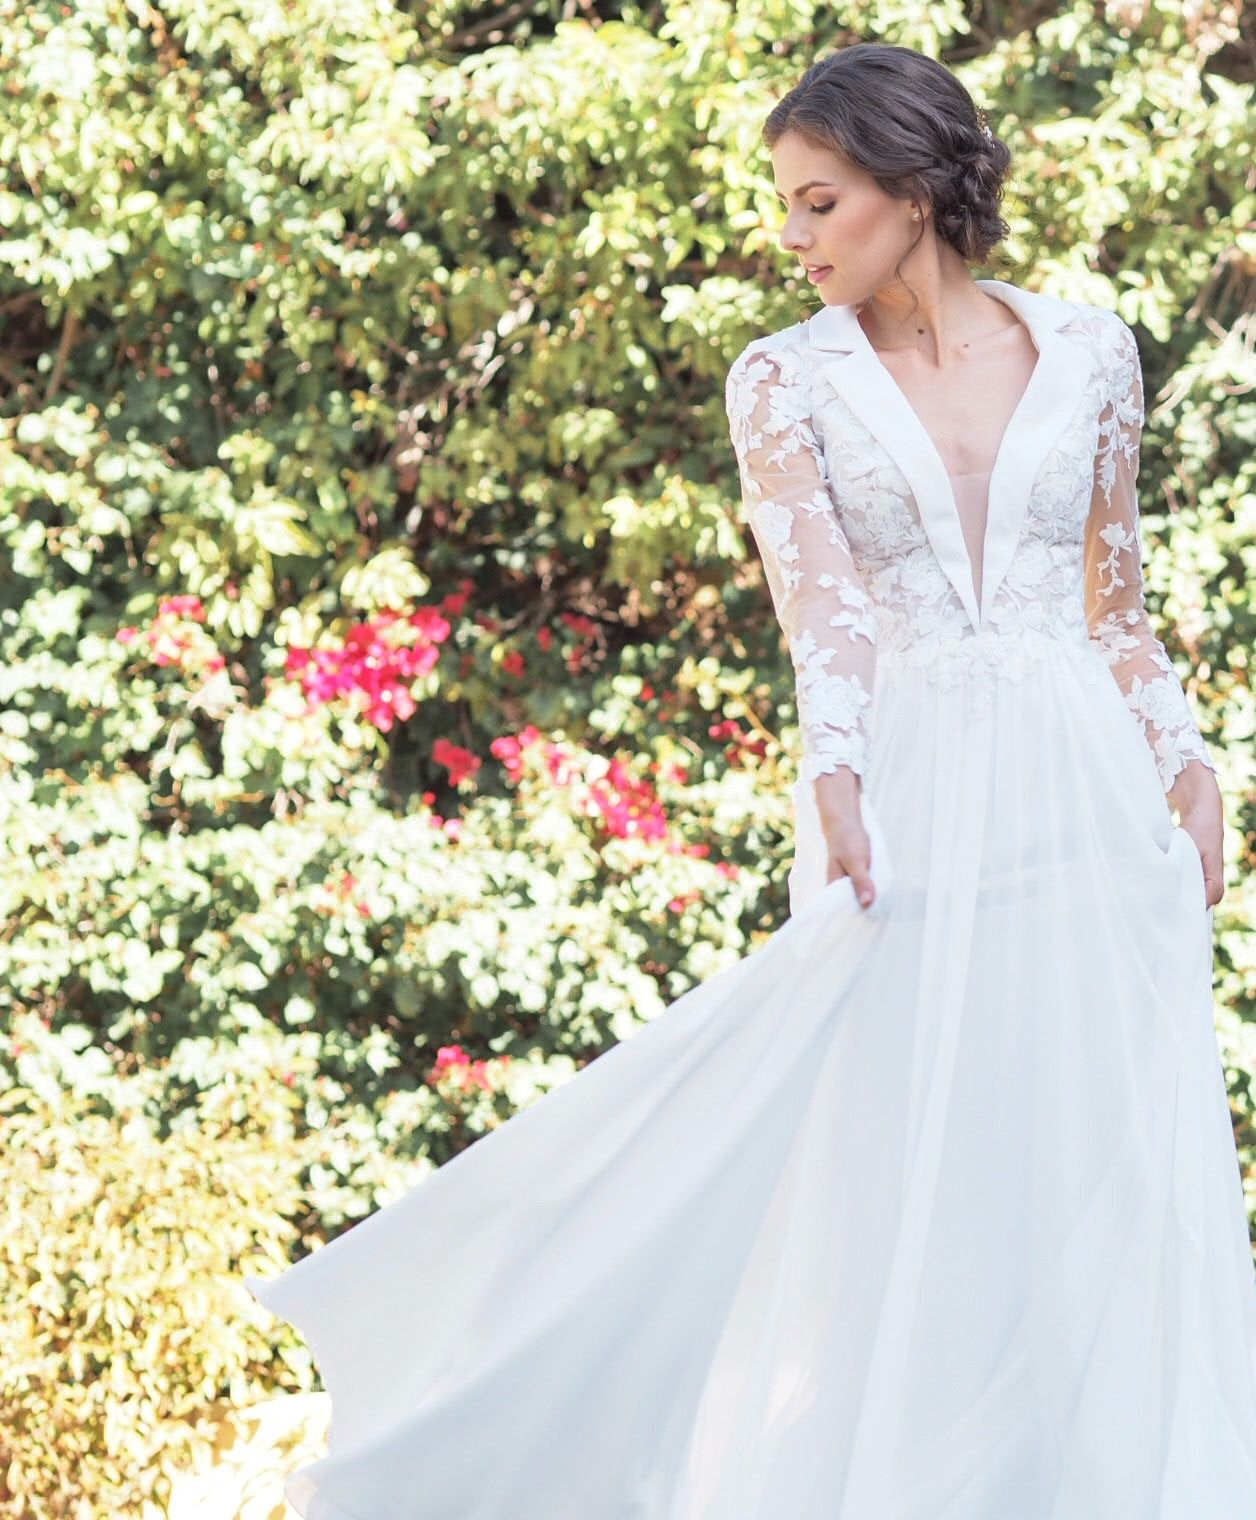 Evelyn bridal salem dress a unique tuxedo style wedding gown with